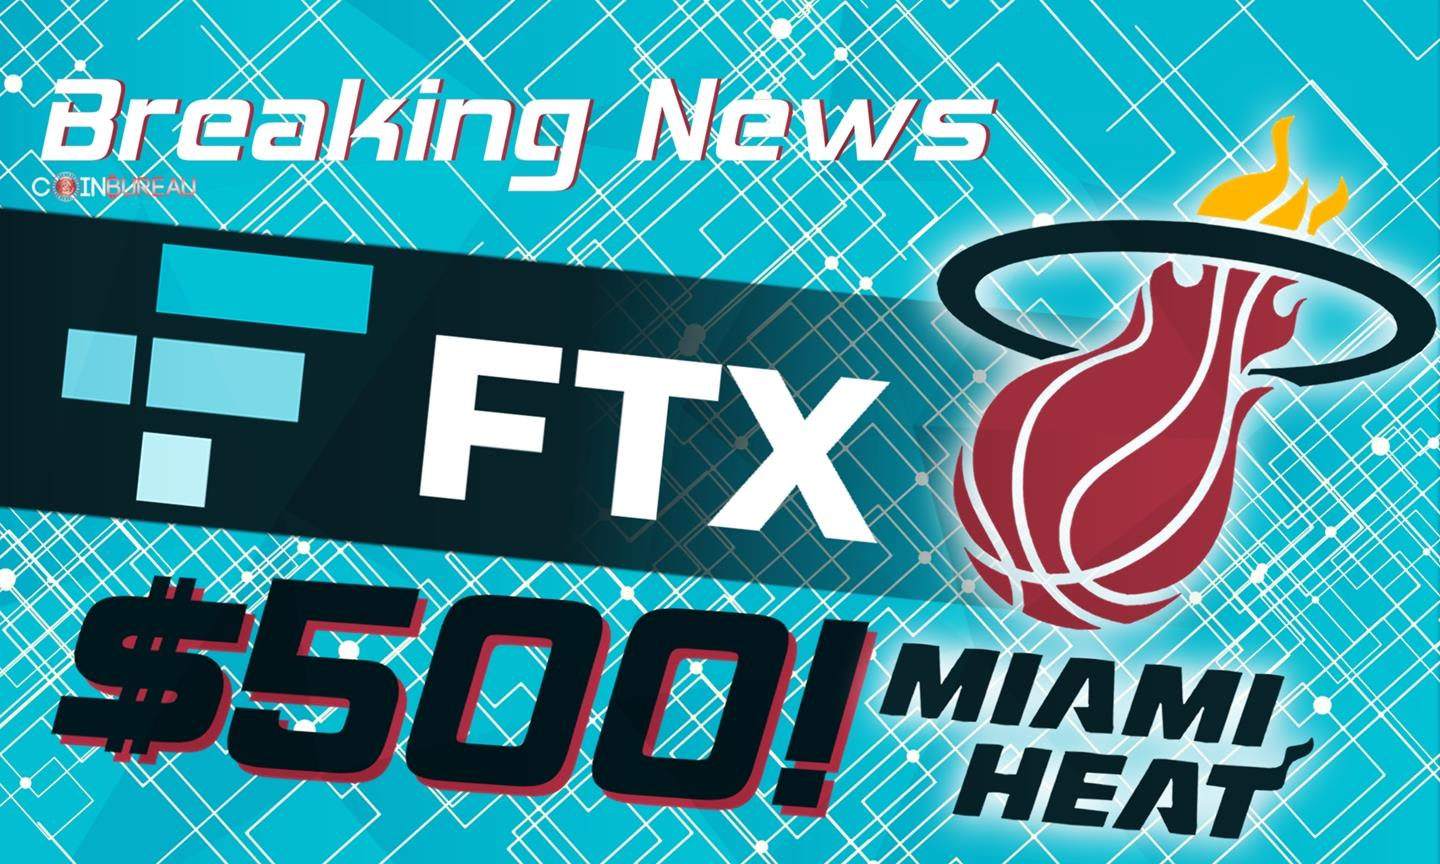 Entire Section Of Fans Gets $500 Worth of Crypto From FTX At Miami Heat Season Opener